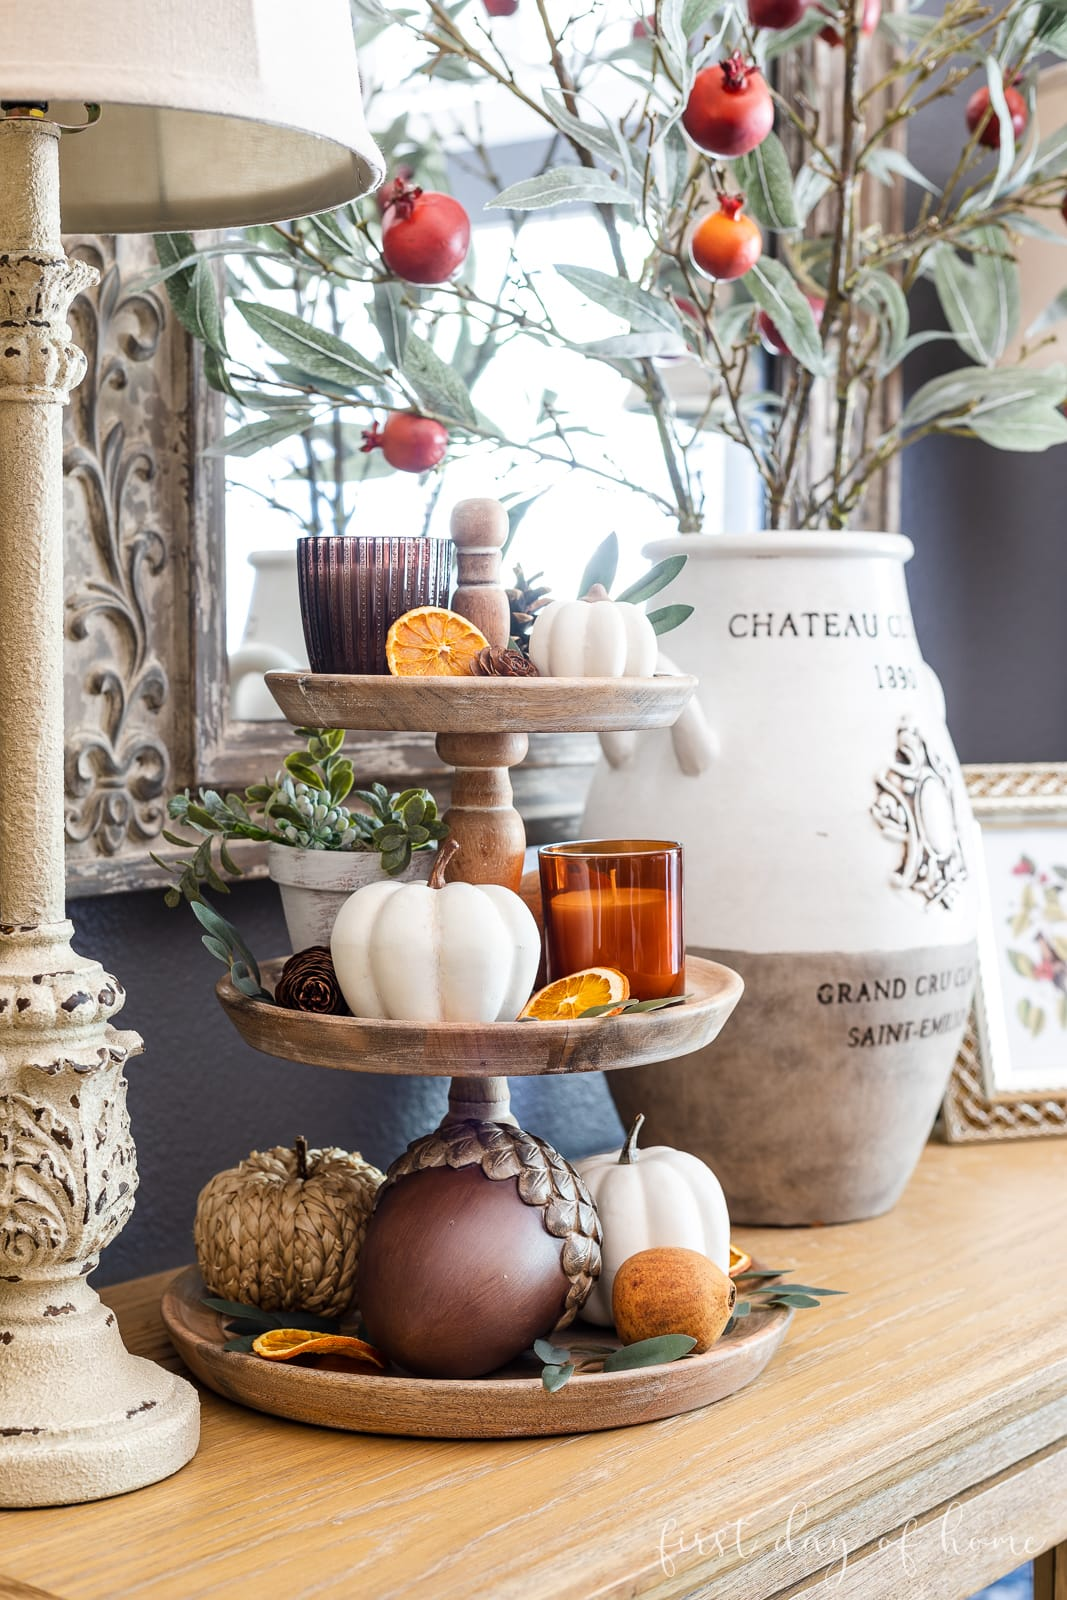 Tiered tray with fall decor accents and dried orange slices